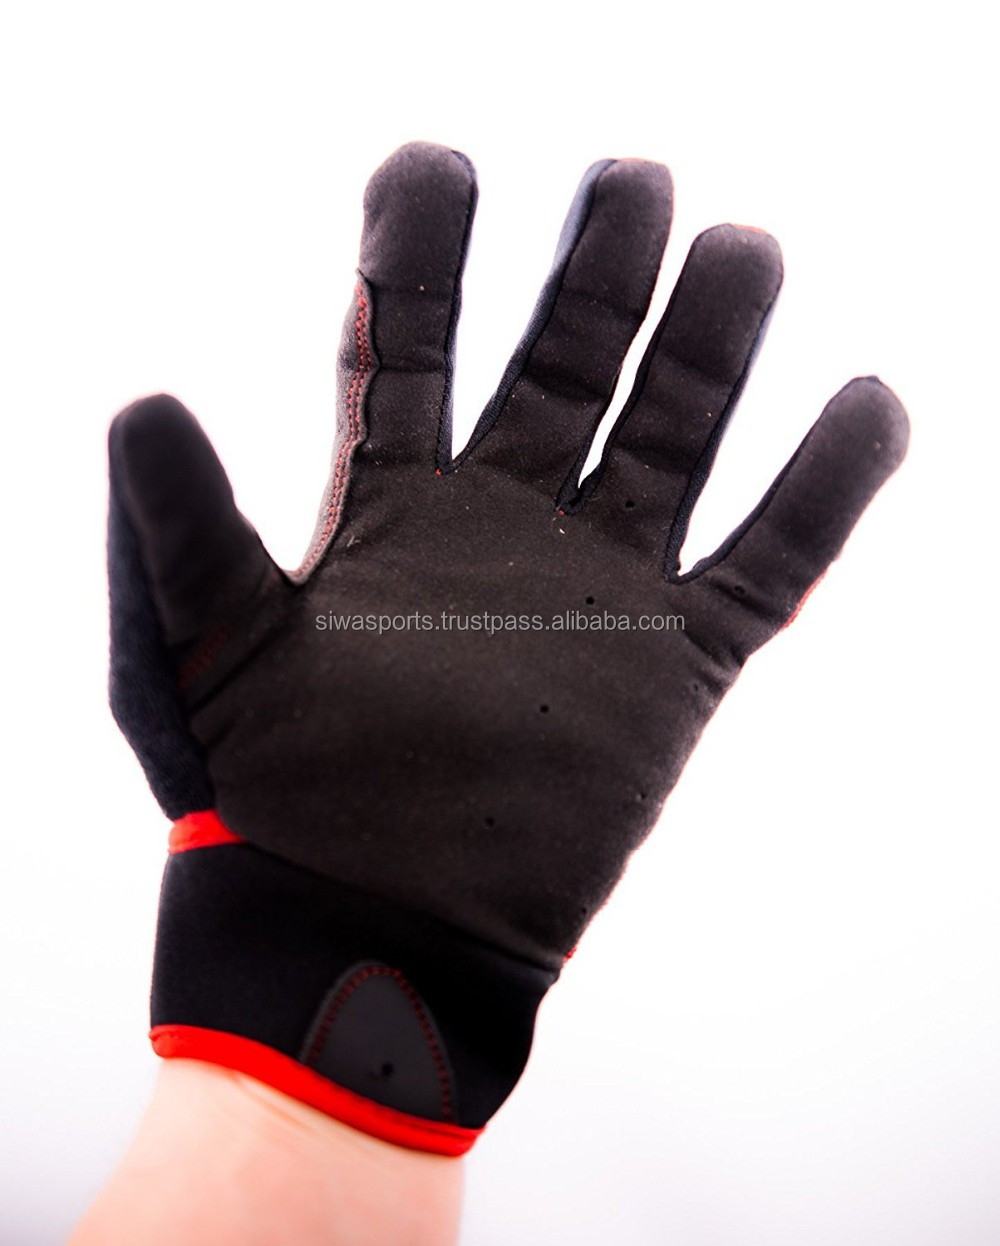 Personalized Fitness Gloves: Custom Weight Lifting Gloves Fitness Exercise Gym Work Out